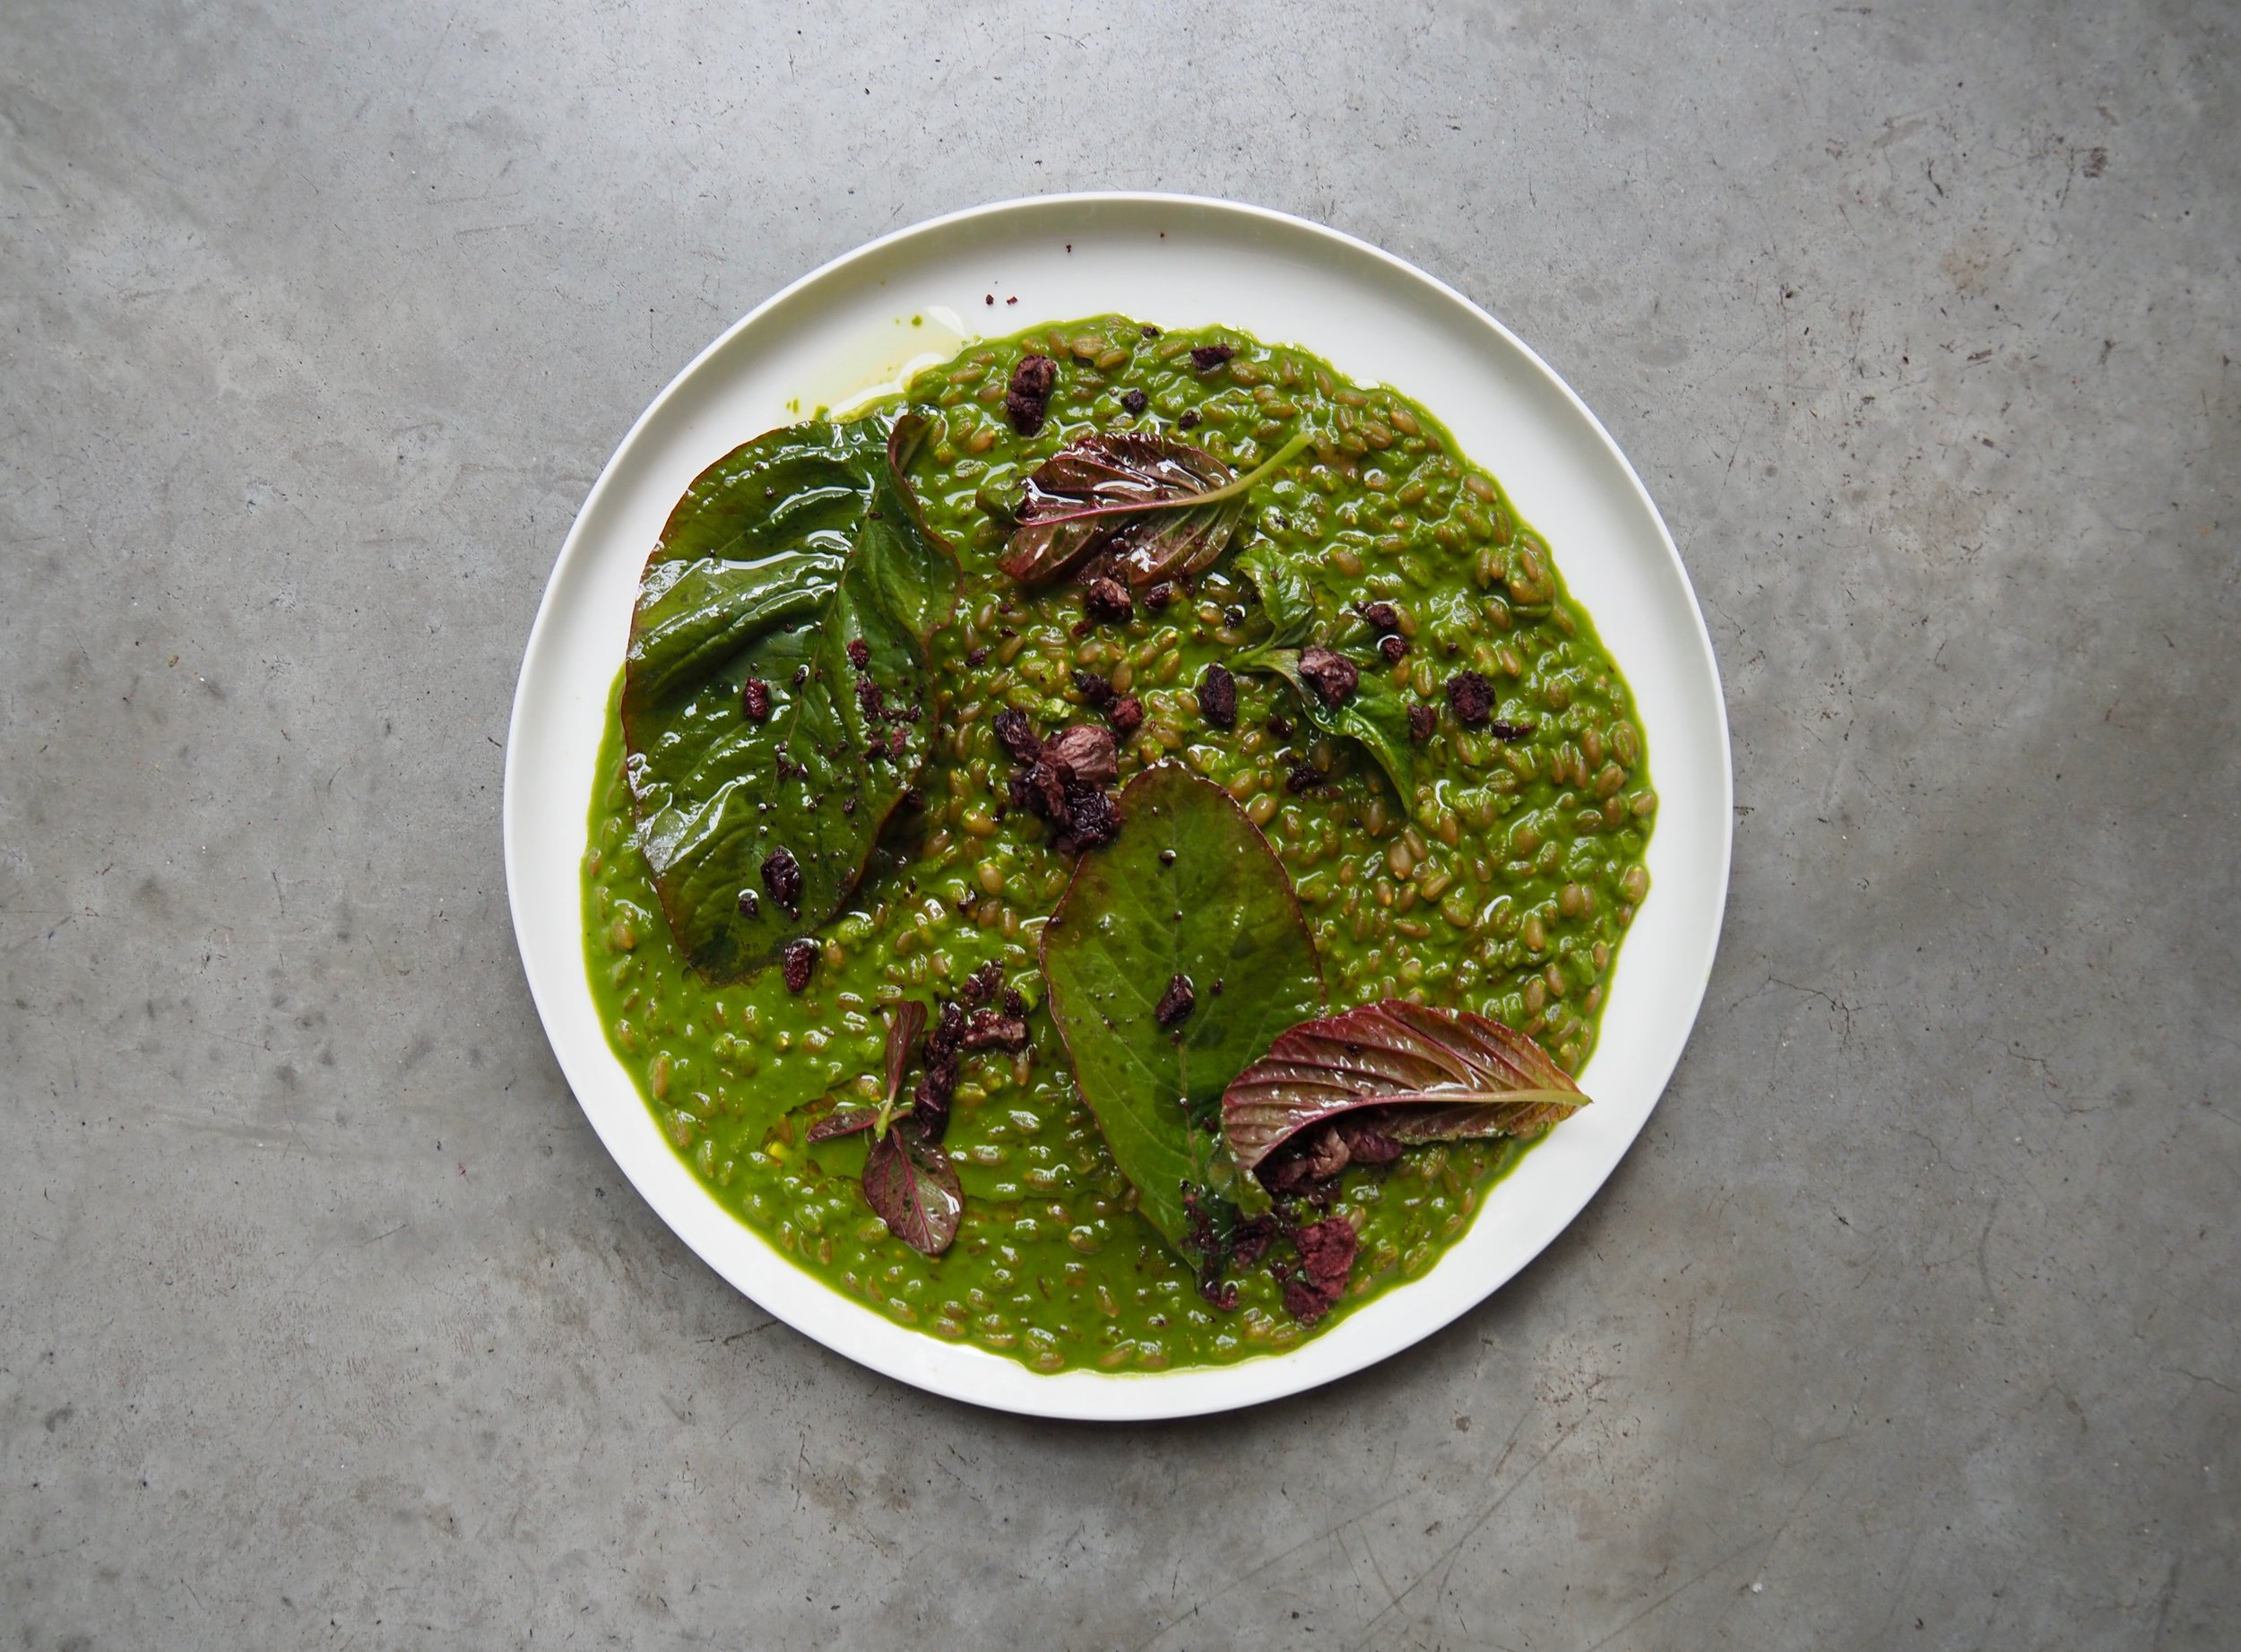 Spelt grain braised in greens with dried olive